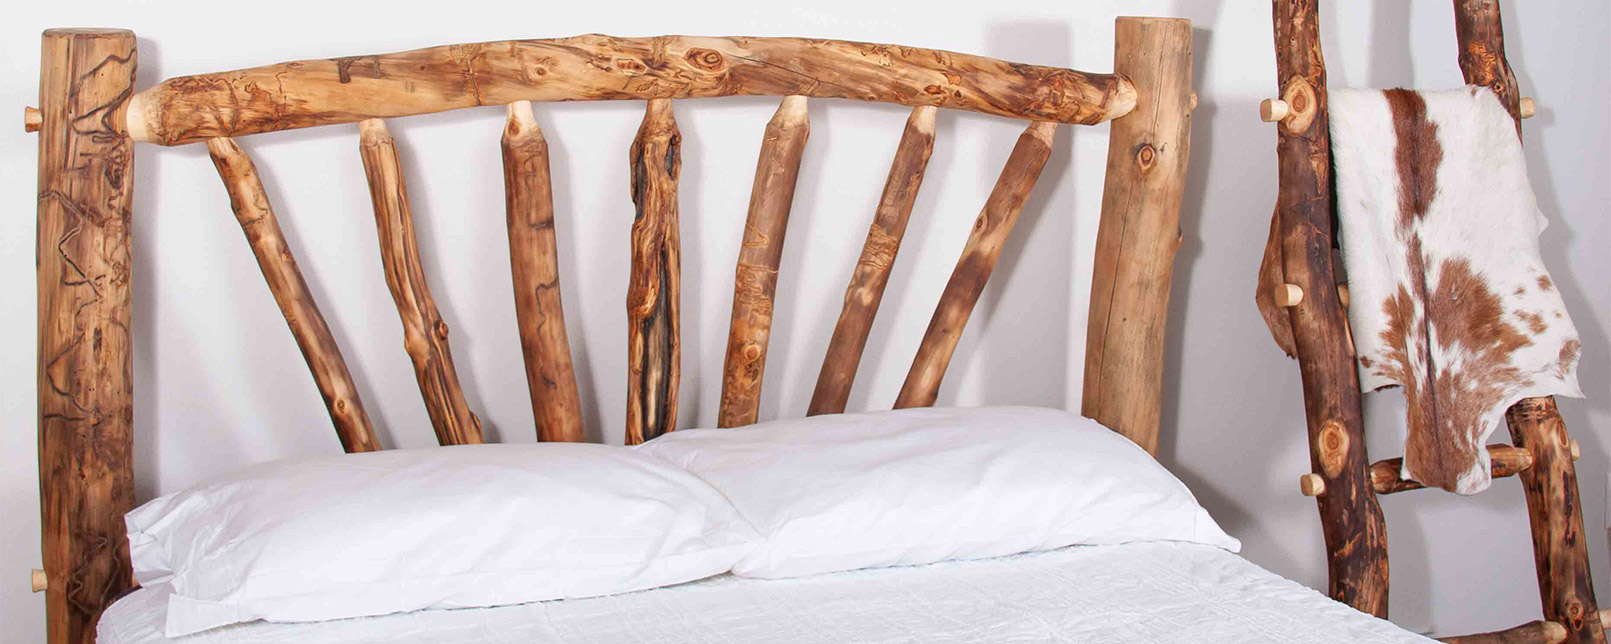 Rustic Wood Furniture Log Reclaimed Wood Barnwood Aspen Br